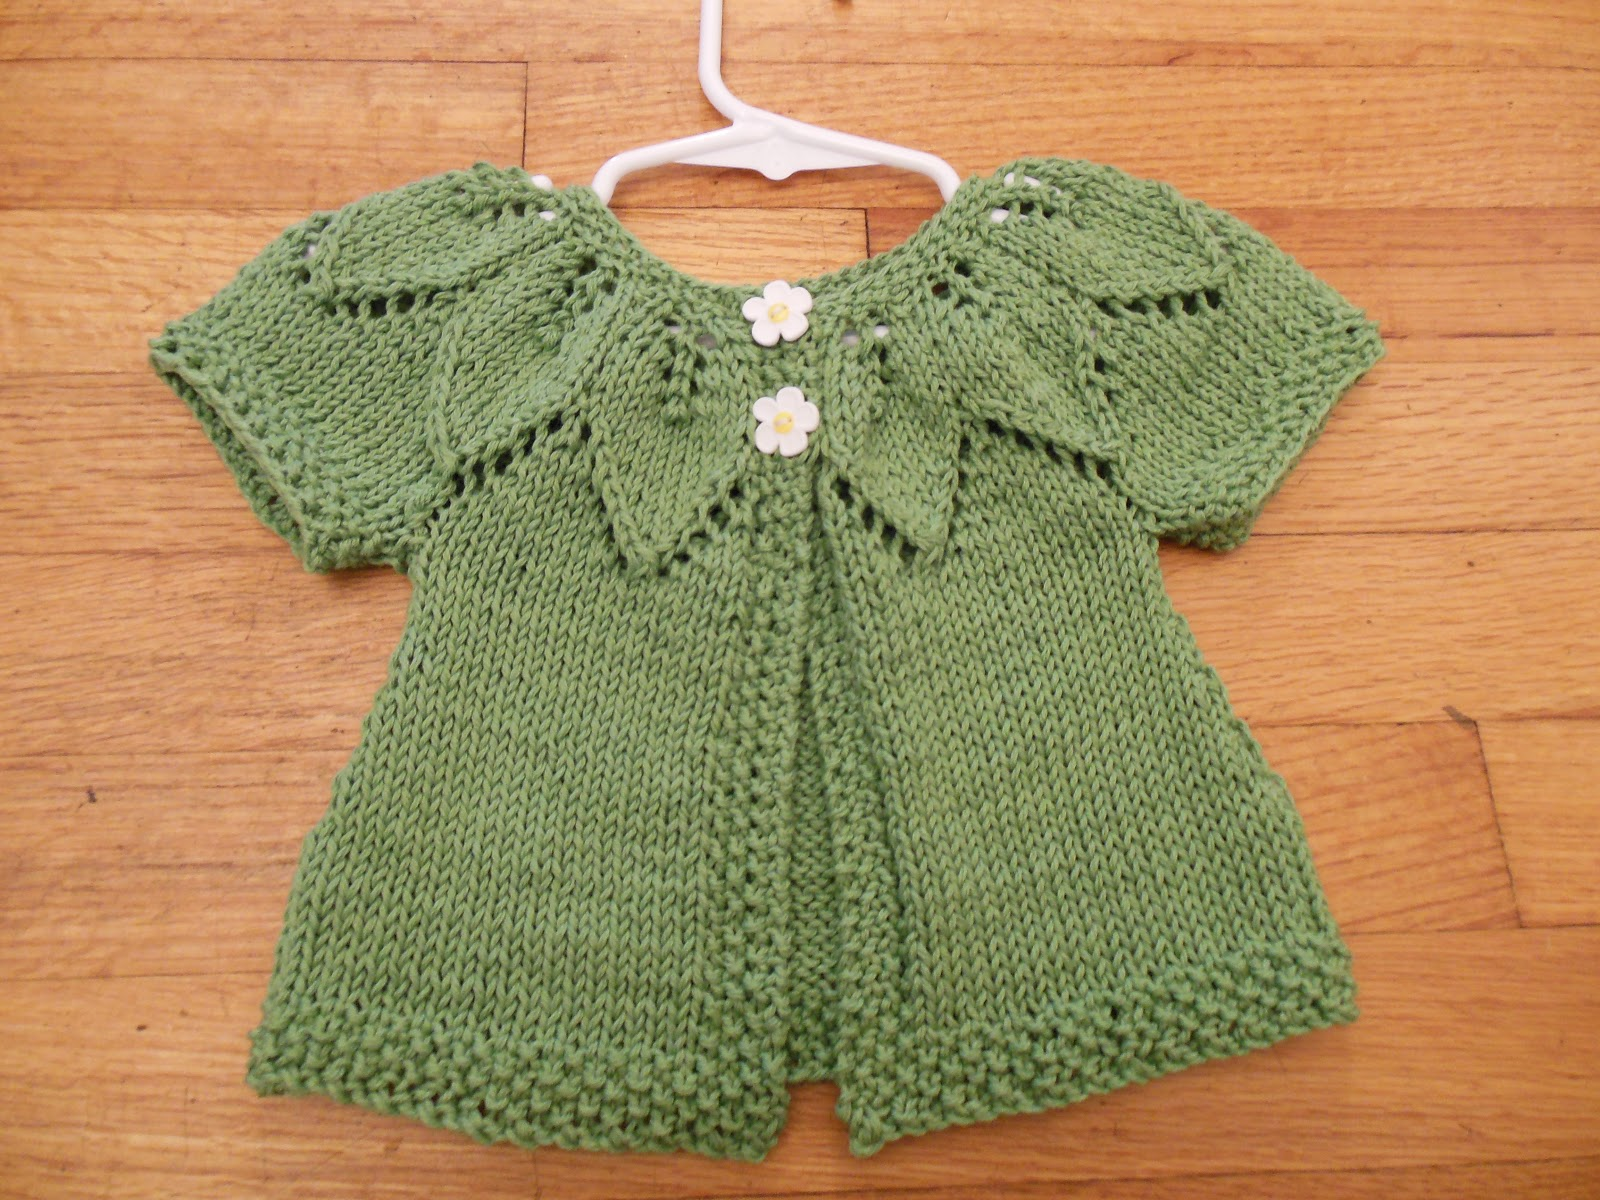 Knitting Patterns For Sweaters For Toddlers : Natural State Knitting: Baby Leaf Sweater